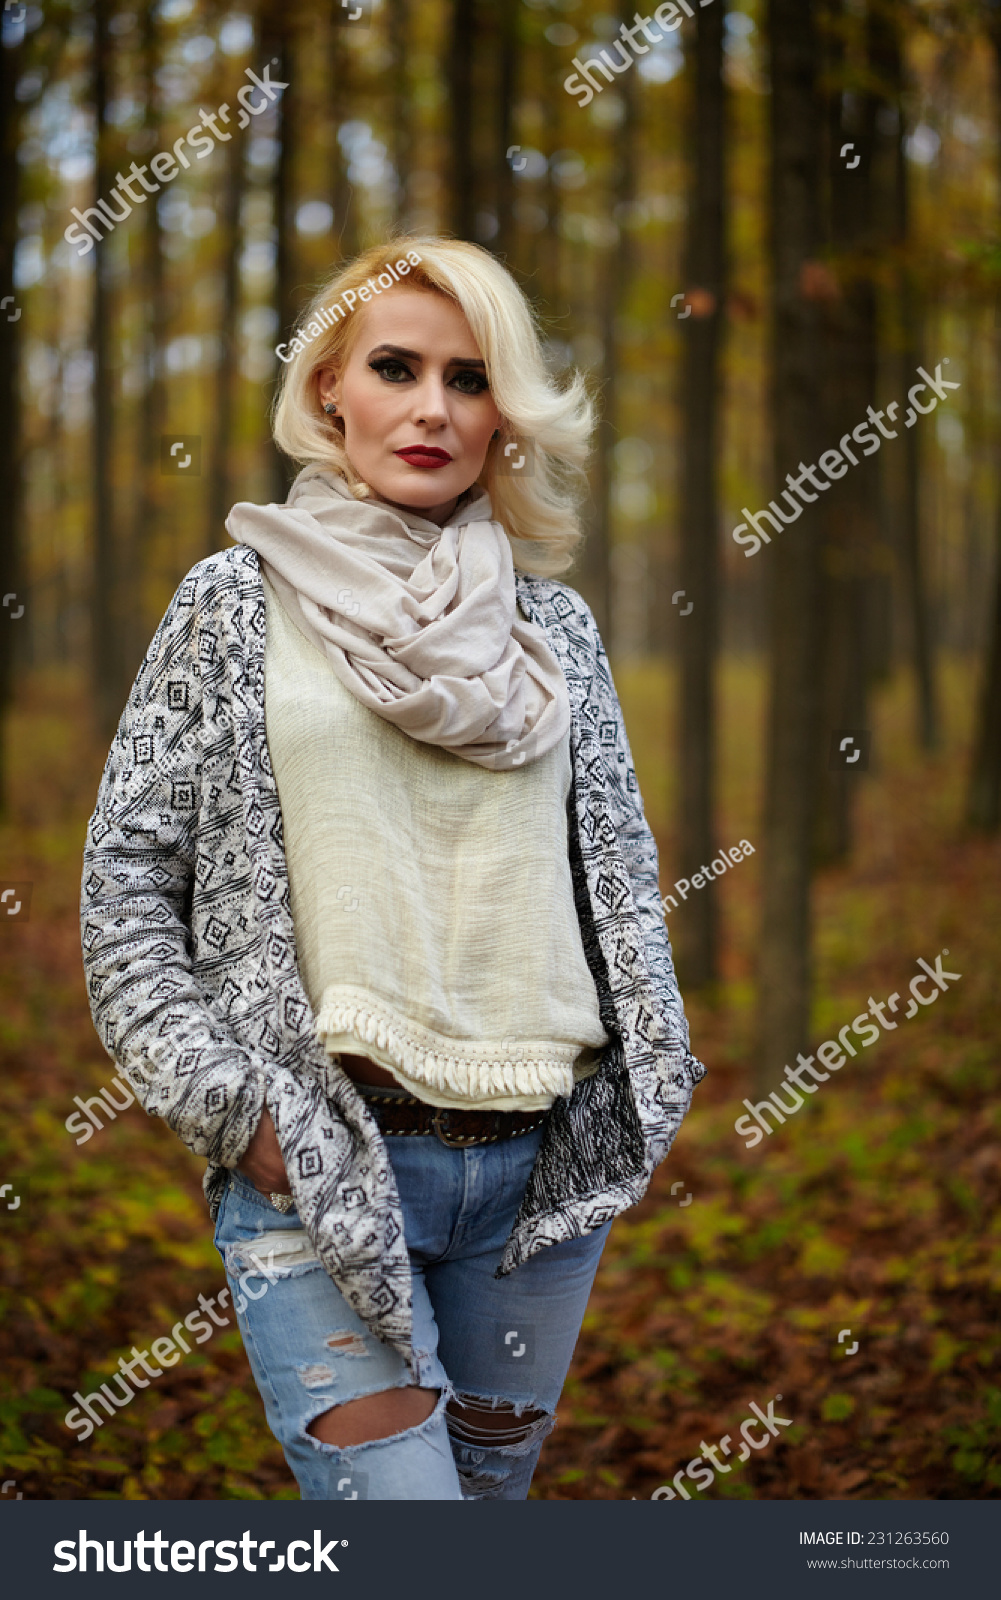 305107fa5f9a Blonde Mature Caucasian Woman Outdoor Forest Stock Photo (Edit Now ...